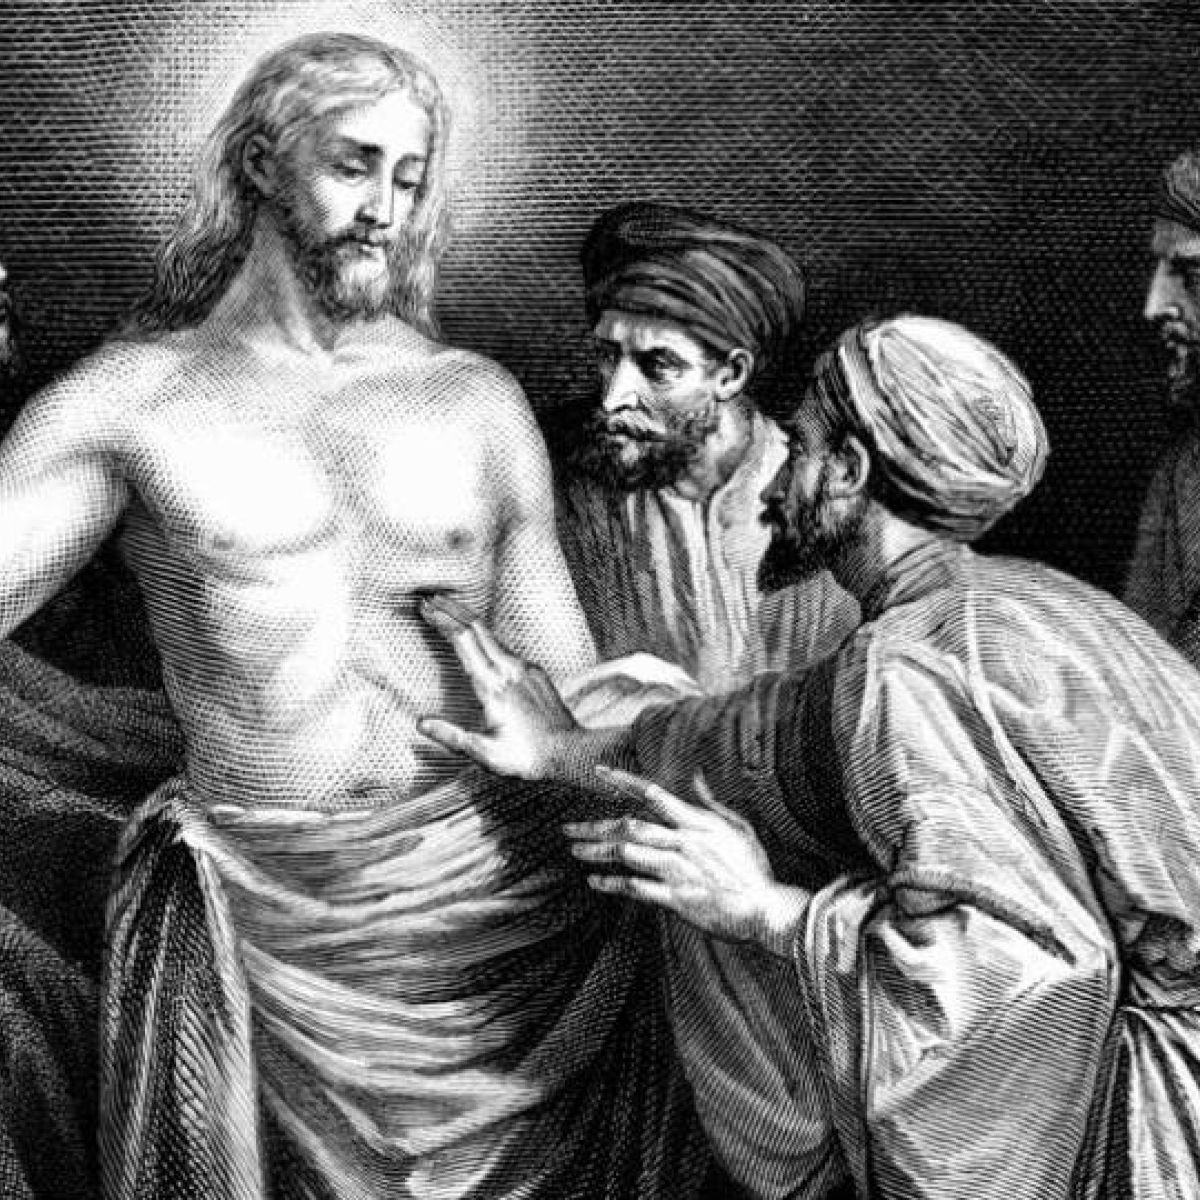 Thinking Anew: Lessons in faith from Doubting Thomas